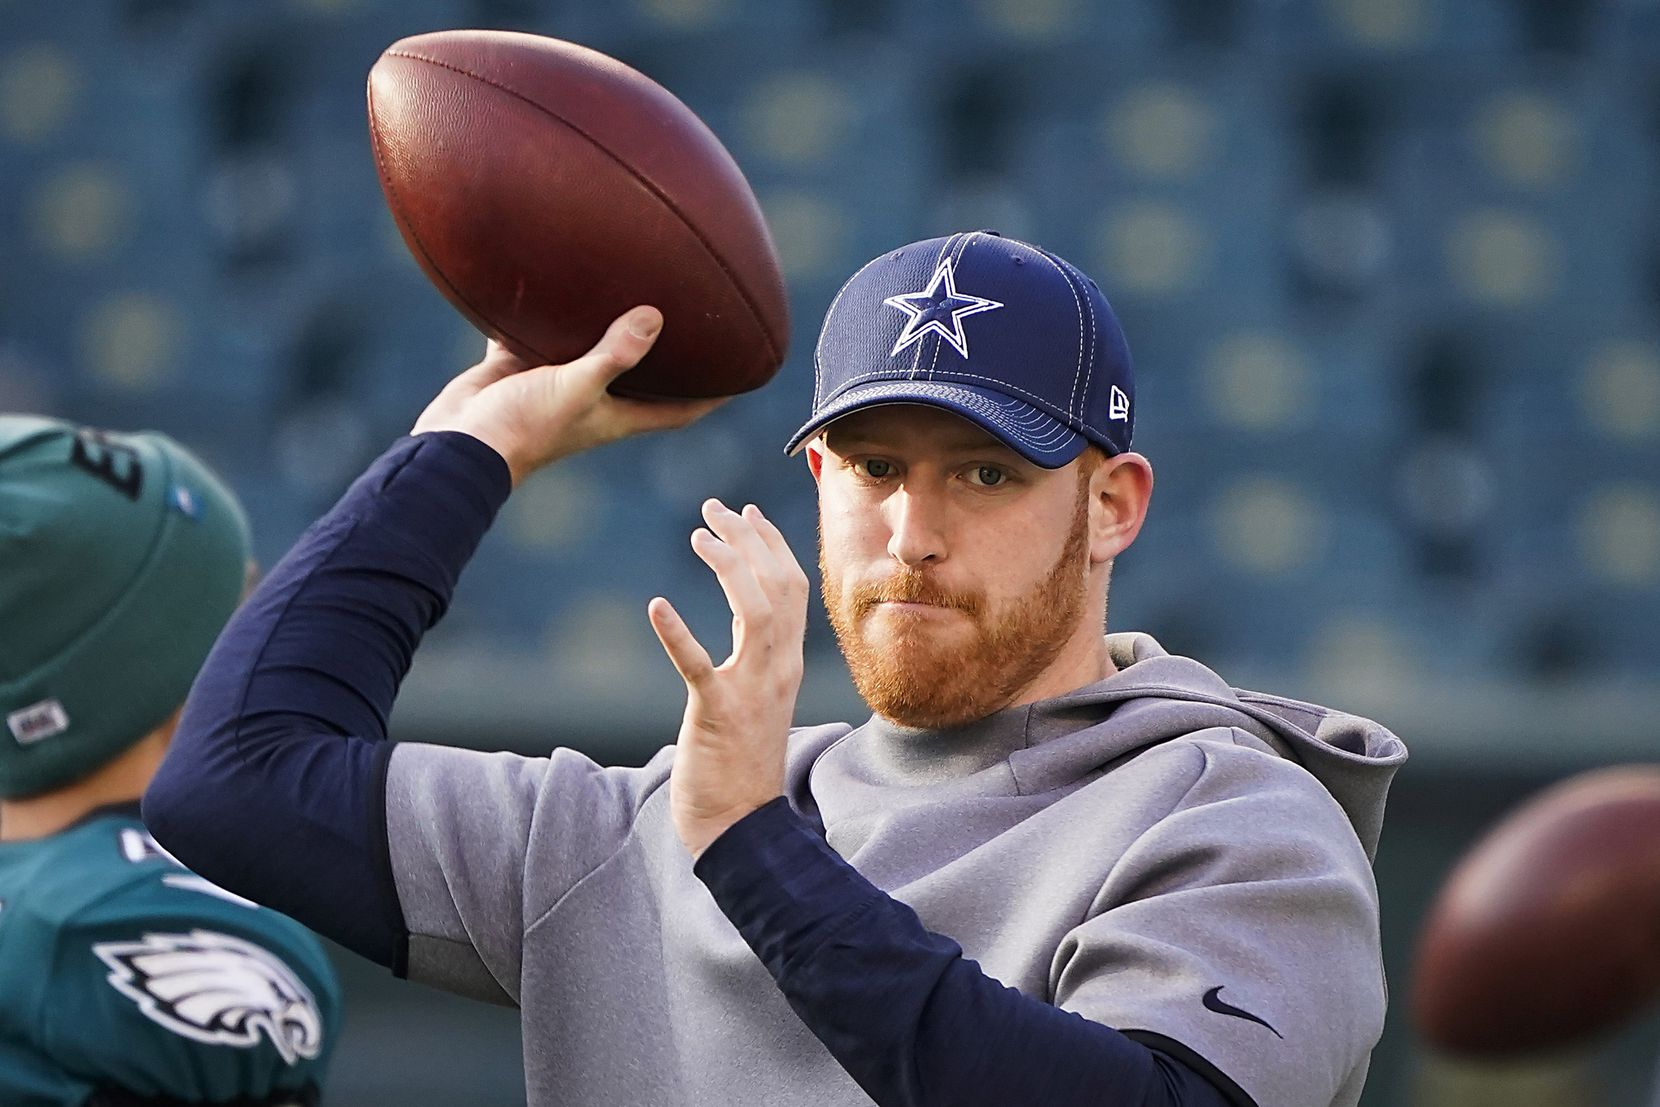 FILE - Cowboys quarterback Cooper Rush warms up before a game against the Eagles at Lincoln Financial Field on Sunday, Dec. 22, 2019, in Philadelphia.